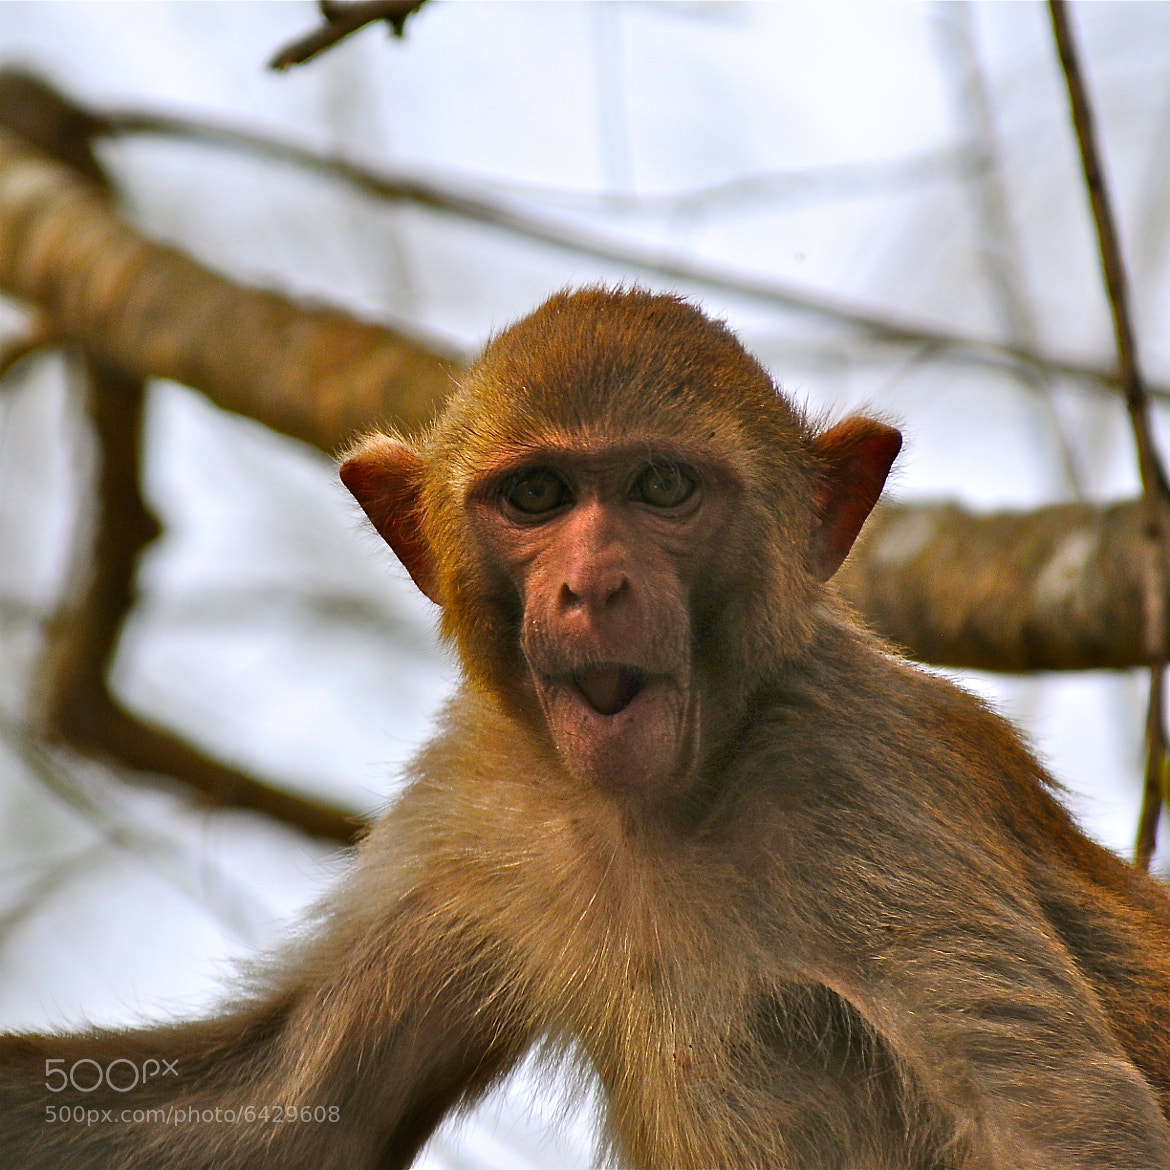 Photograph Rhesus macaque by Hermes S on 500px